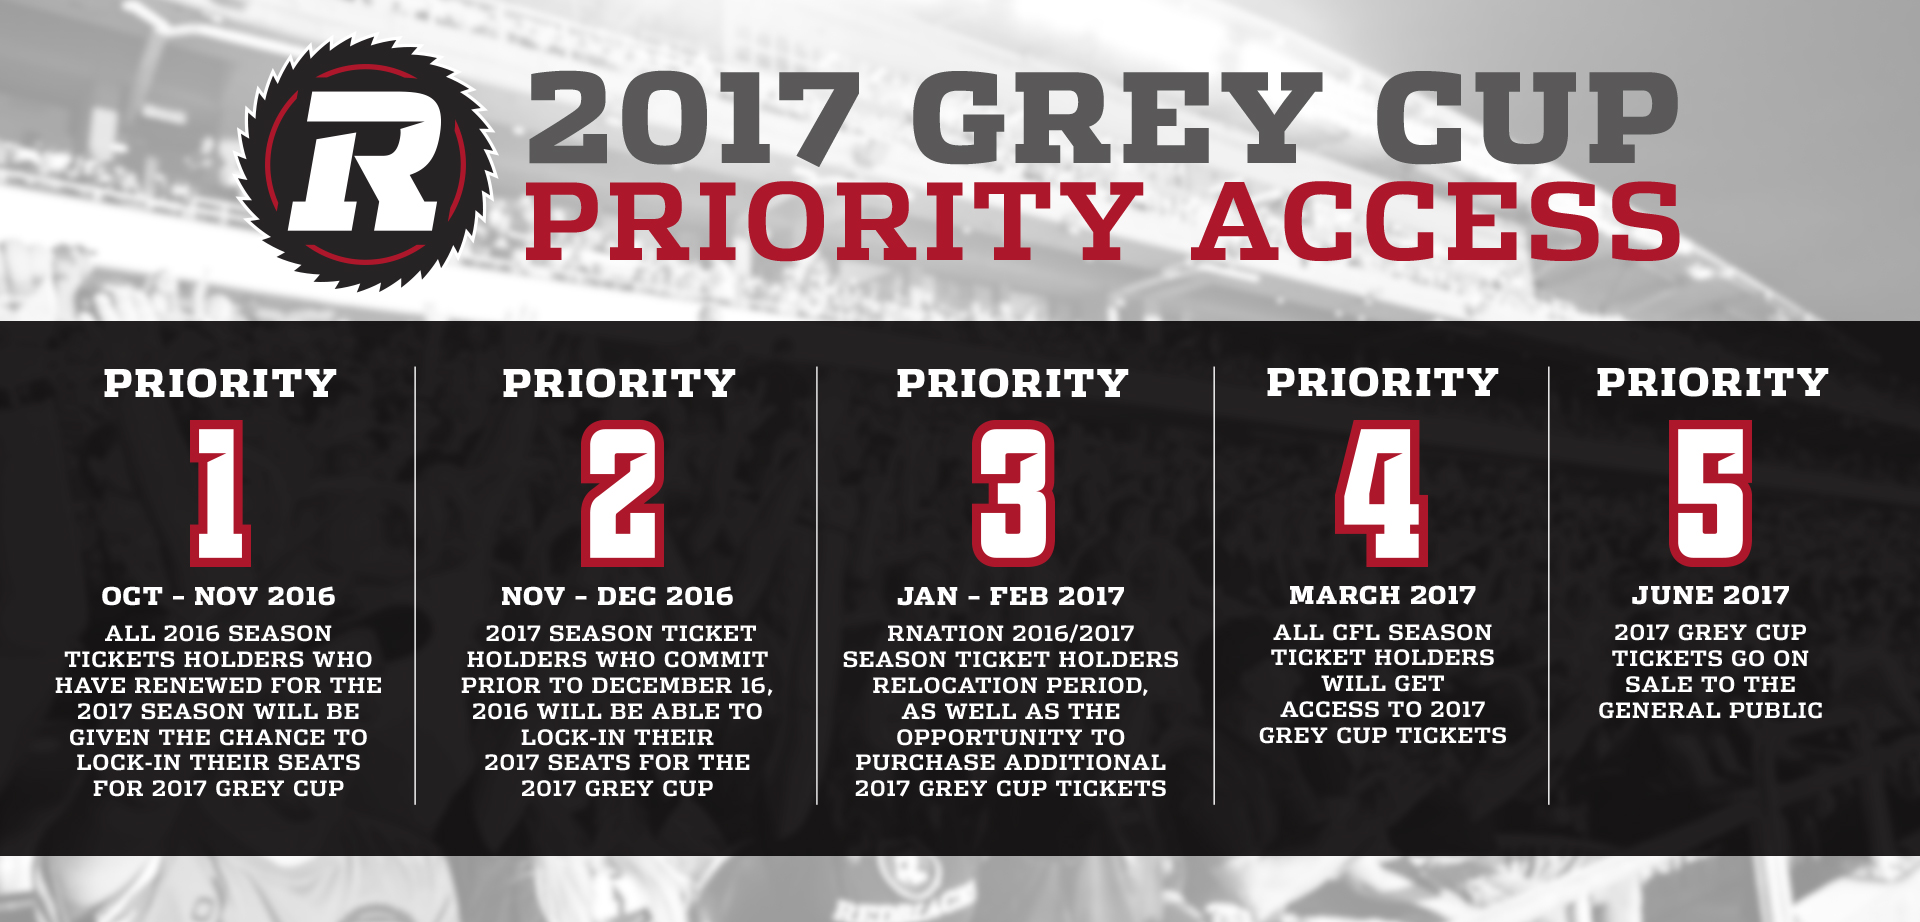 2017 Grey up Priority Access Dates for Grey Cup Tickets